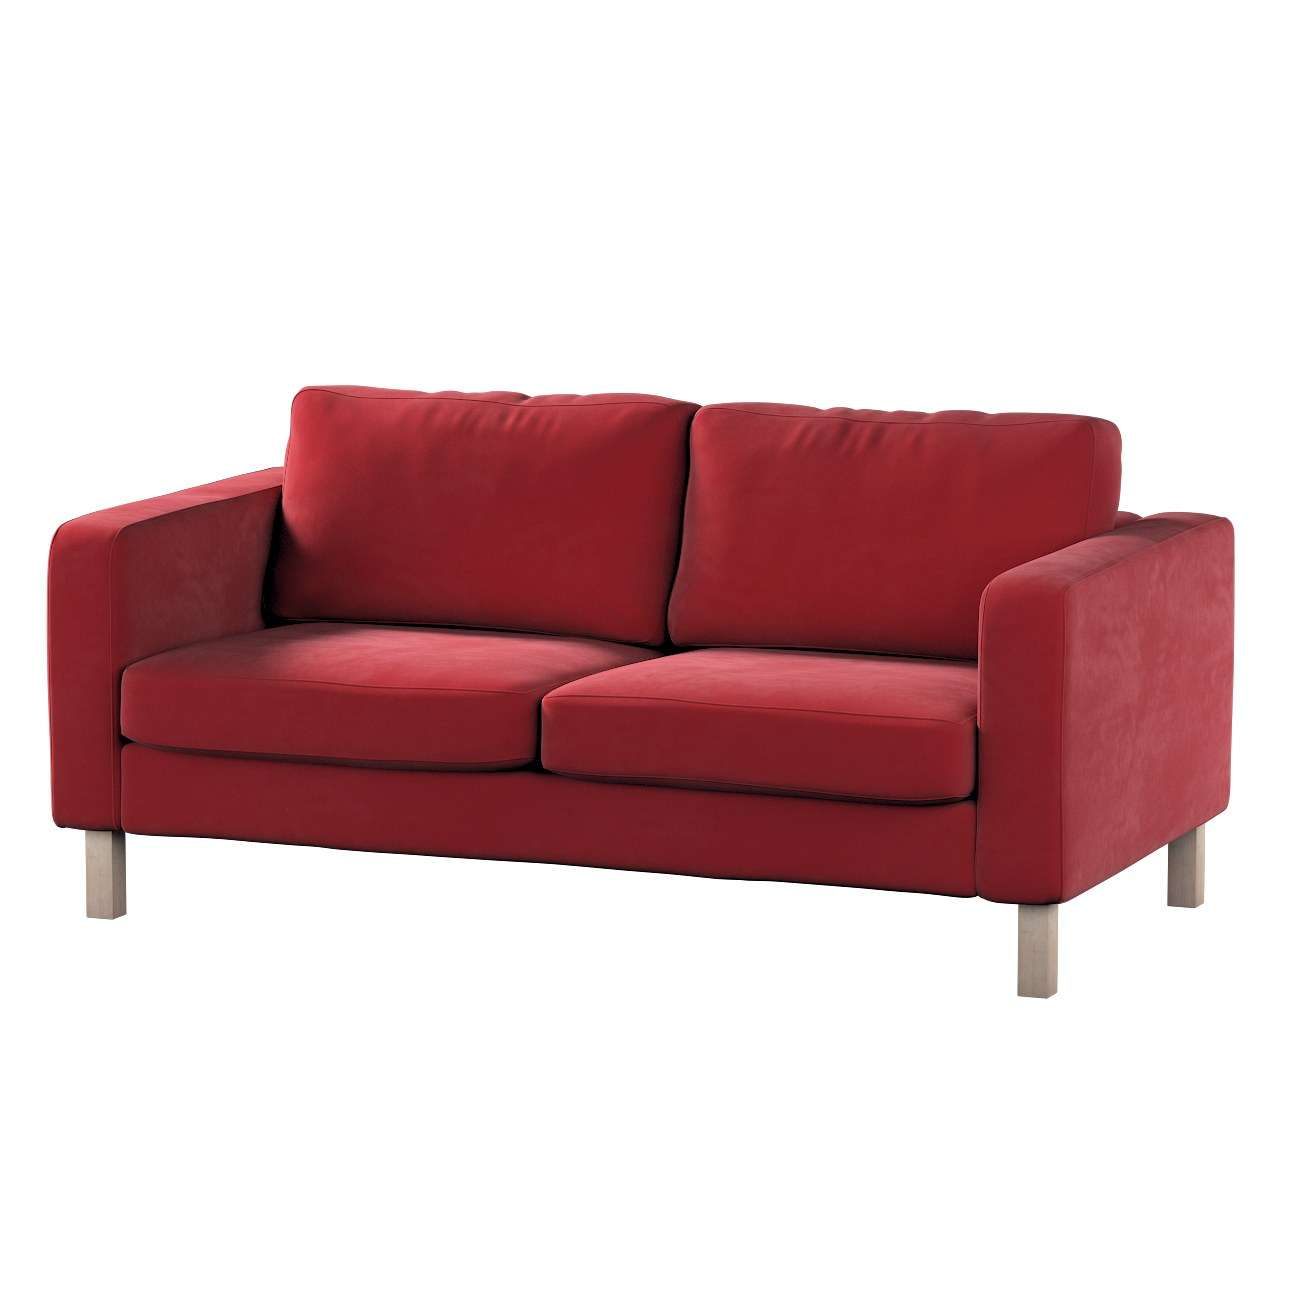 Karlstad 2-seater sofa cover in collection Velvet, fabric: 704-15